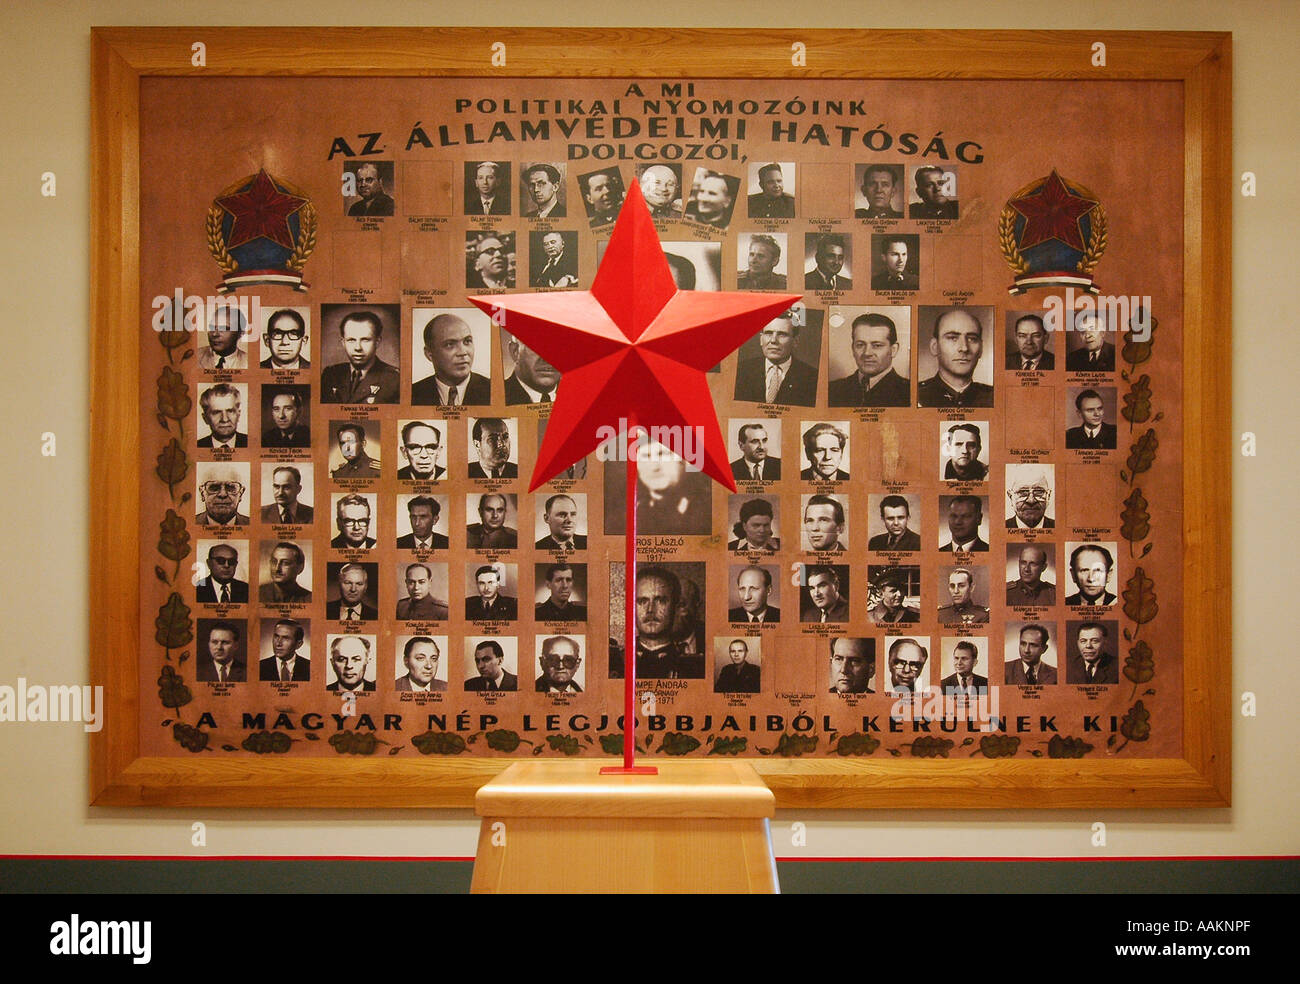 Photos of Hungarian Communists displayed inside House of Terror Haza Museum in Budapest Hungary - Stock Image